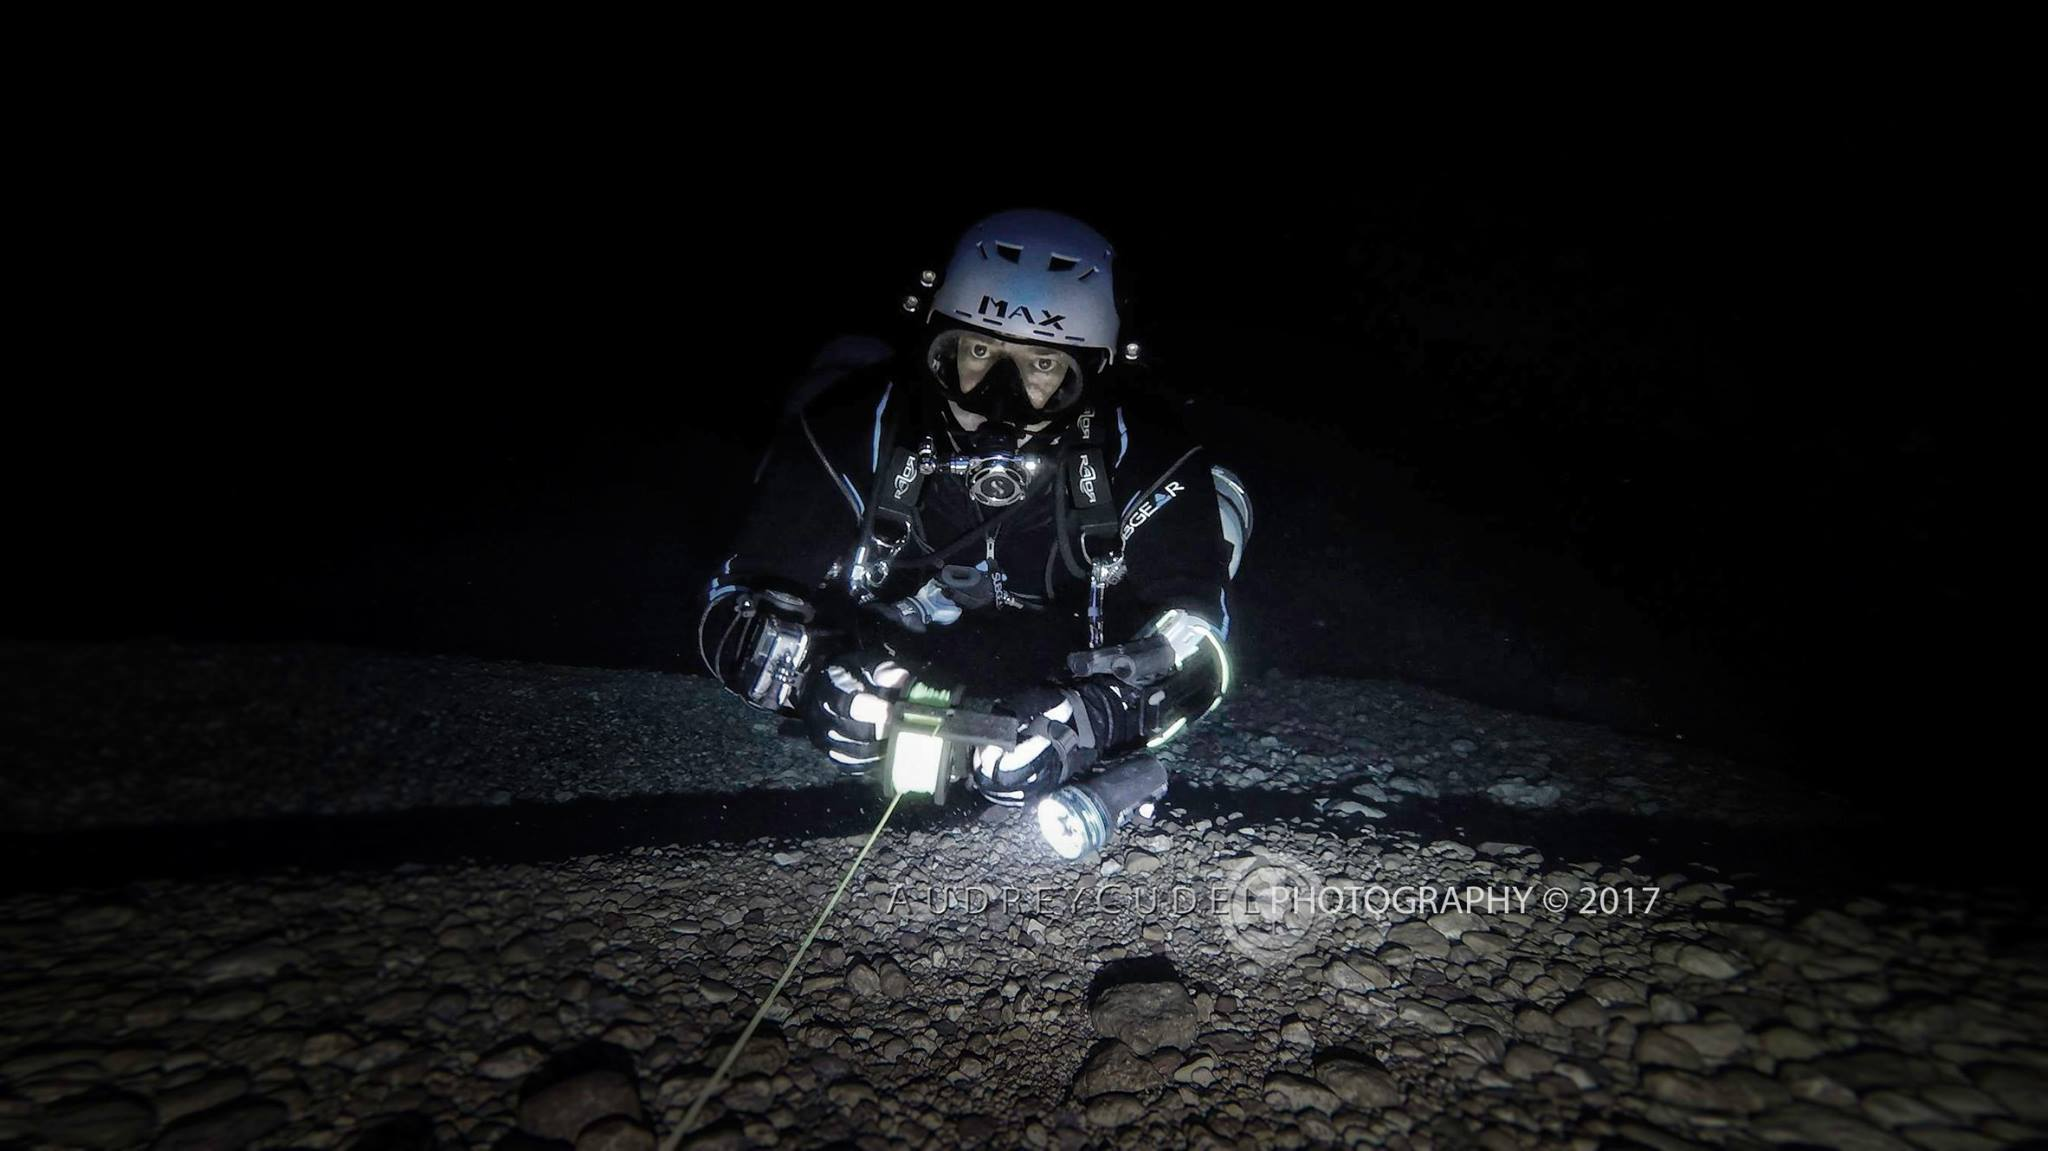 - Max (Tech Diver) TechSM & Full Cave refresher, 2016'Audrey Cudel's beautiful pictures of sidemount- wreck and cavedivers made me come to gozo to meet her in person and learn from her. Being away from tech-diving for a while I did not only learn how to properly dive sidemount. She also boosted my interest in making better underwatervideos, training harder for my goals and getting more confident in tight spaces again. Seing her pictures and videos makes me feel like being with her , they are pieces of art and one can feel the presence of a great diver.Like always great people are a magnet for other great people and so I made friends there with great attitude and wisdom.I owe her one of the most peaceful dives in a cave I ever had and I also owe her a lot of loughs during my stays there. Can't wait to come back ! ps : hard to keep it short, could go on writing for a while ;-)